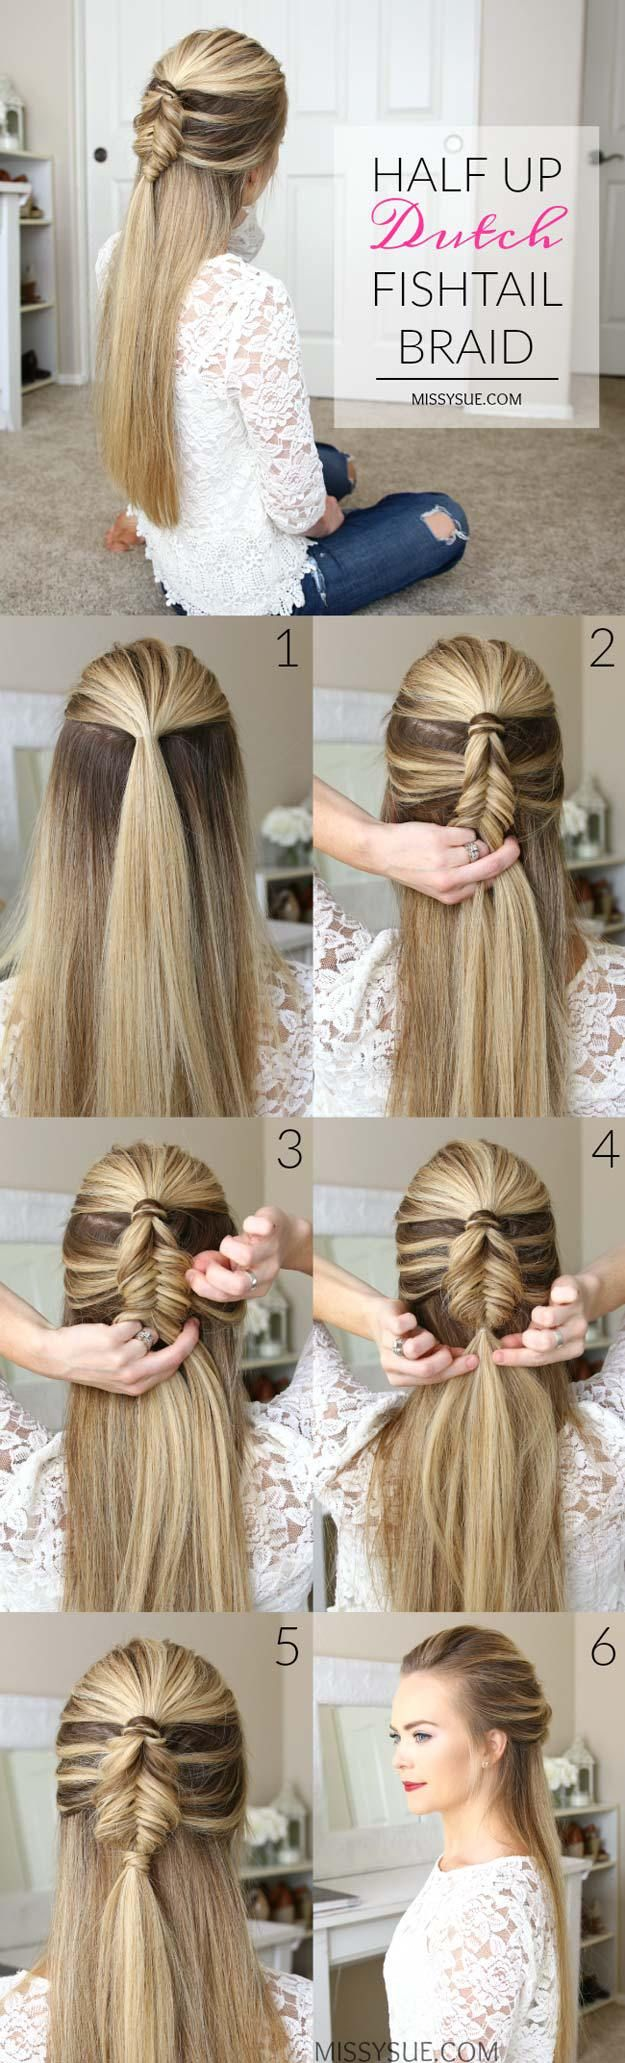 34 best hair images on pinterest | hairstyles, beautiful and